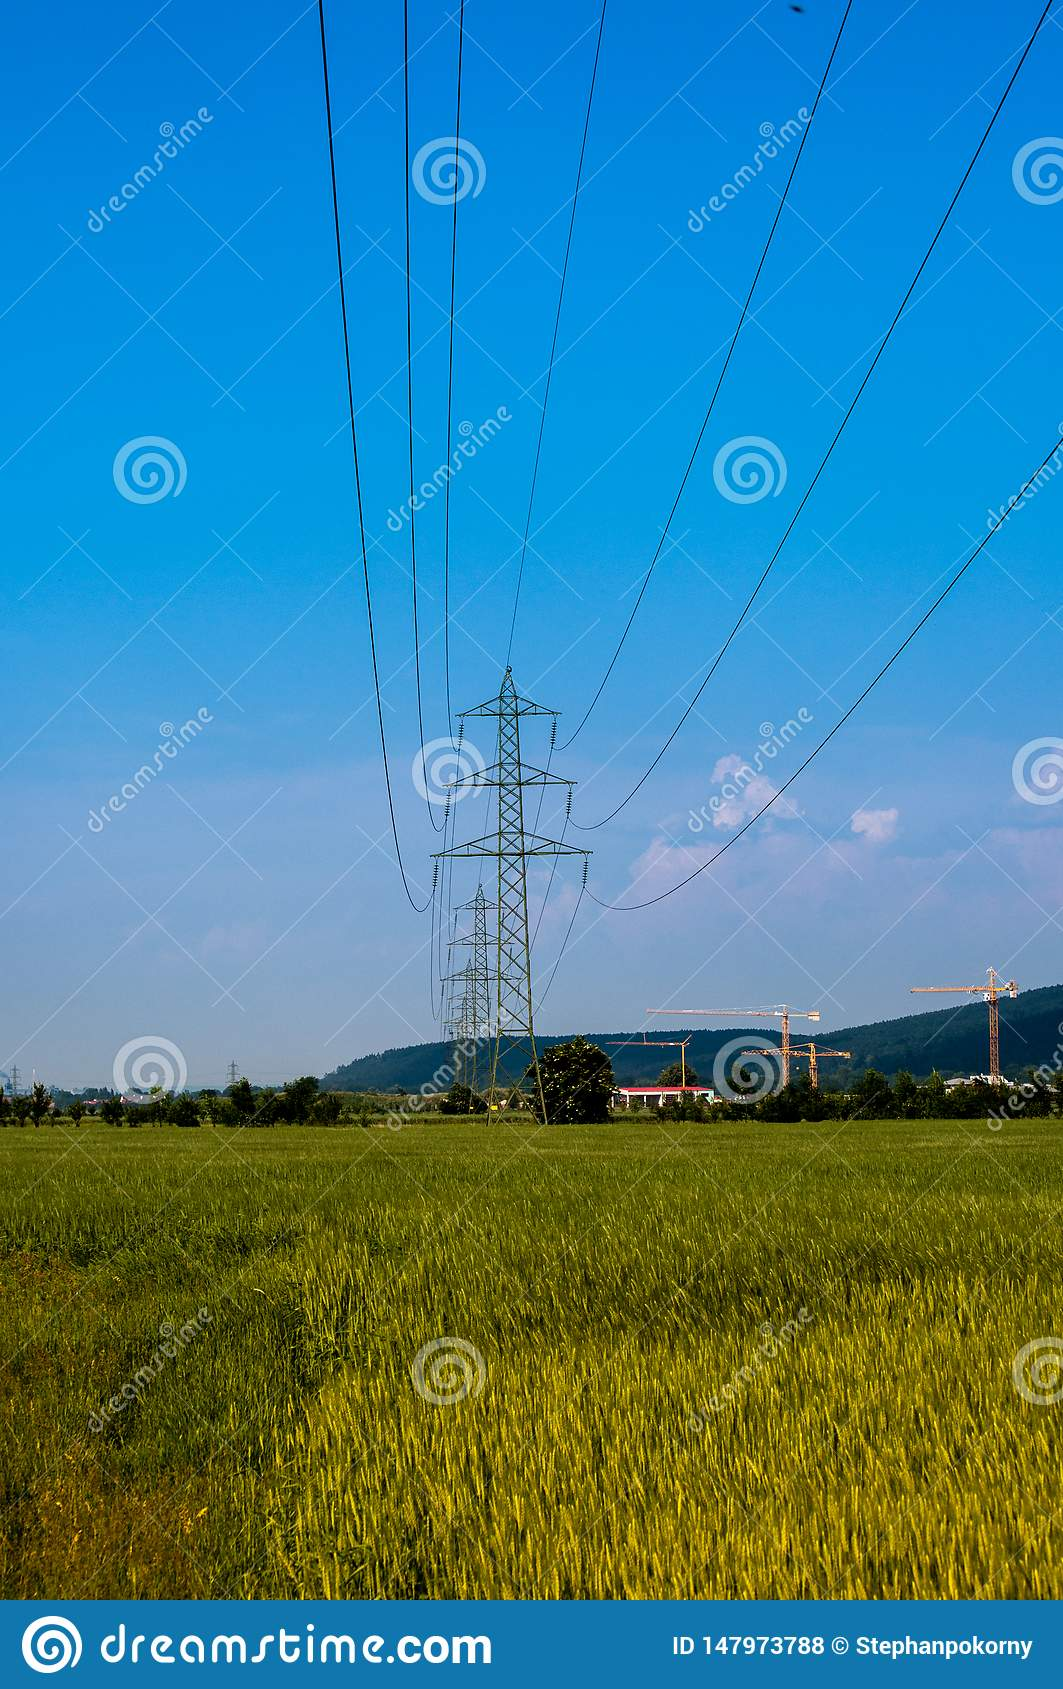 Power electricity cable over a field